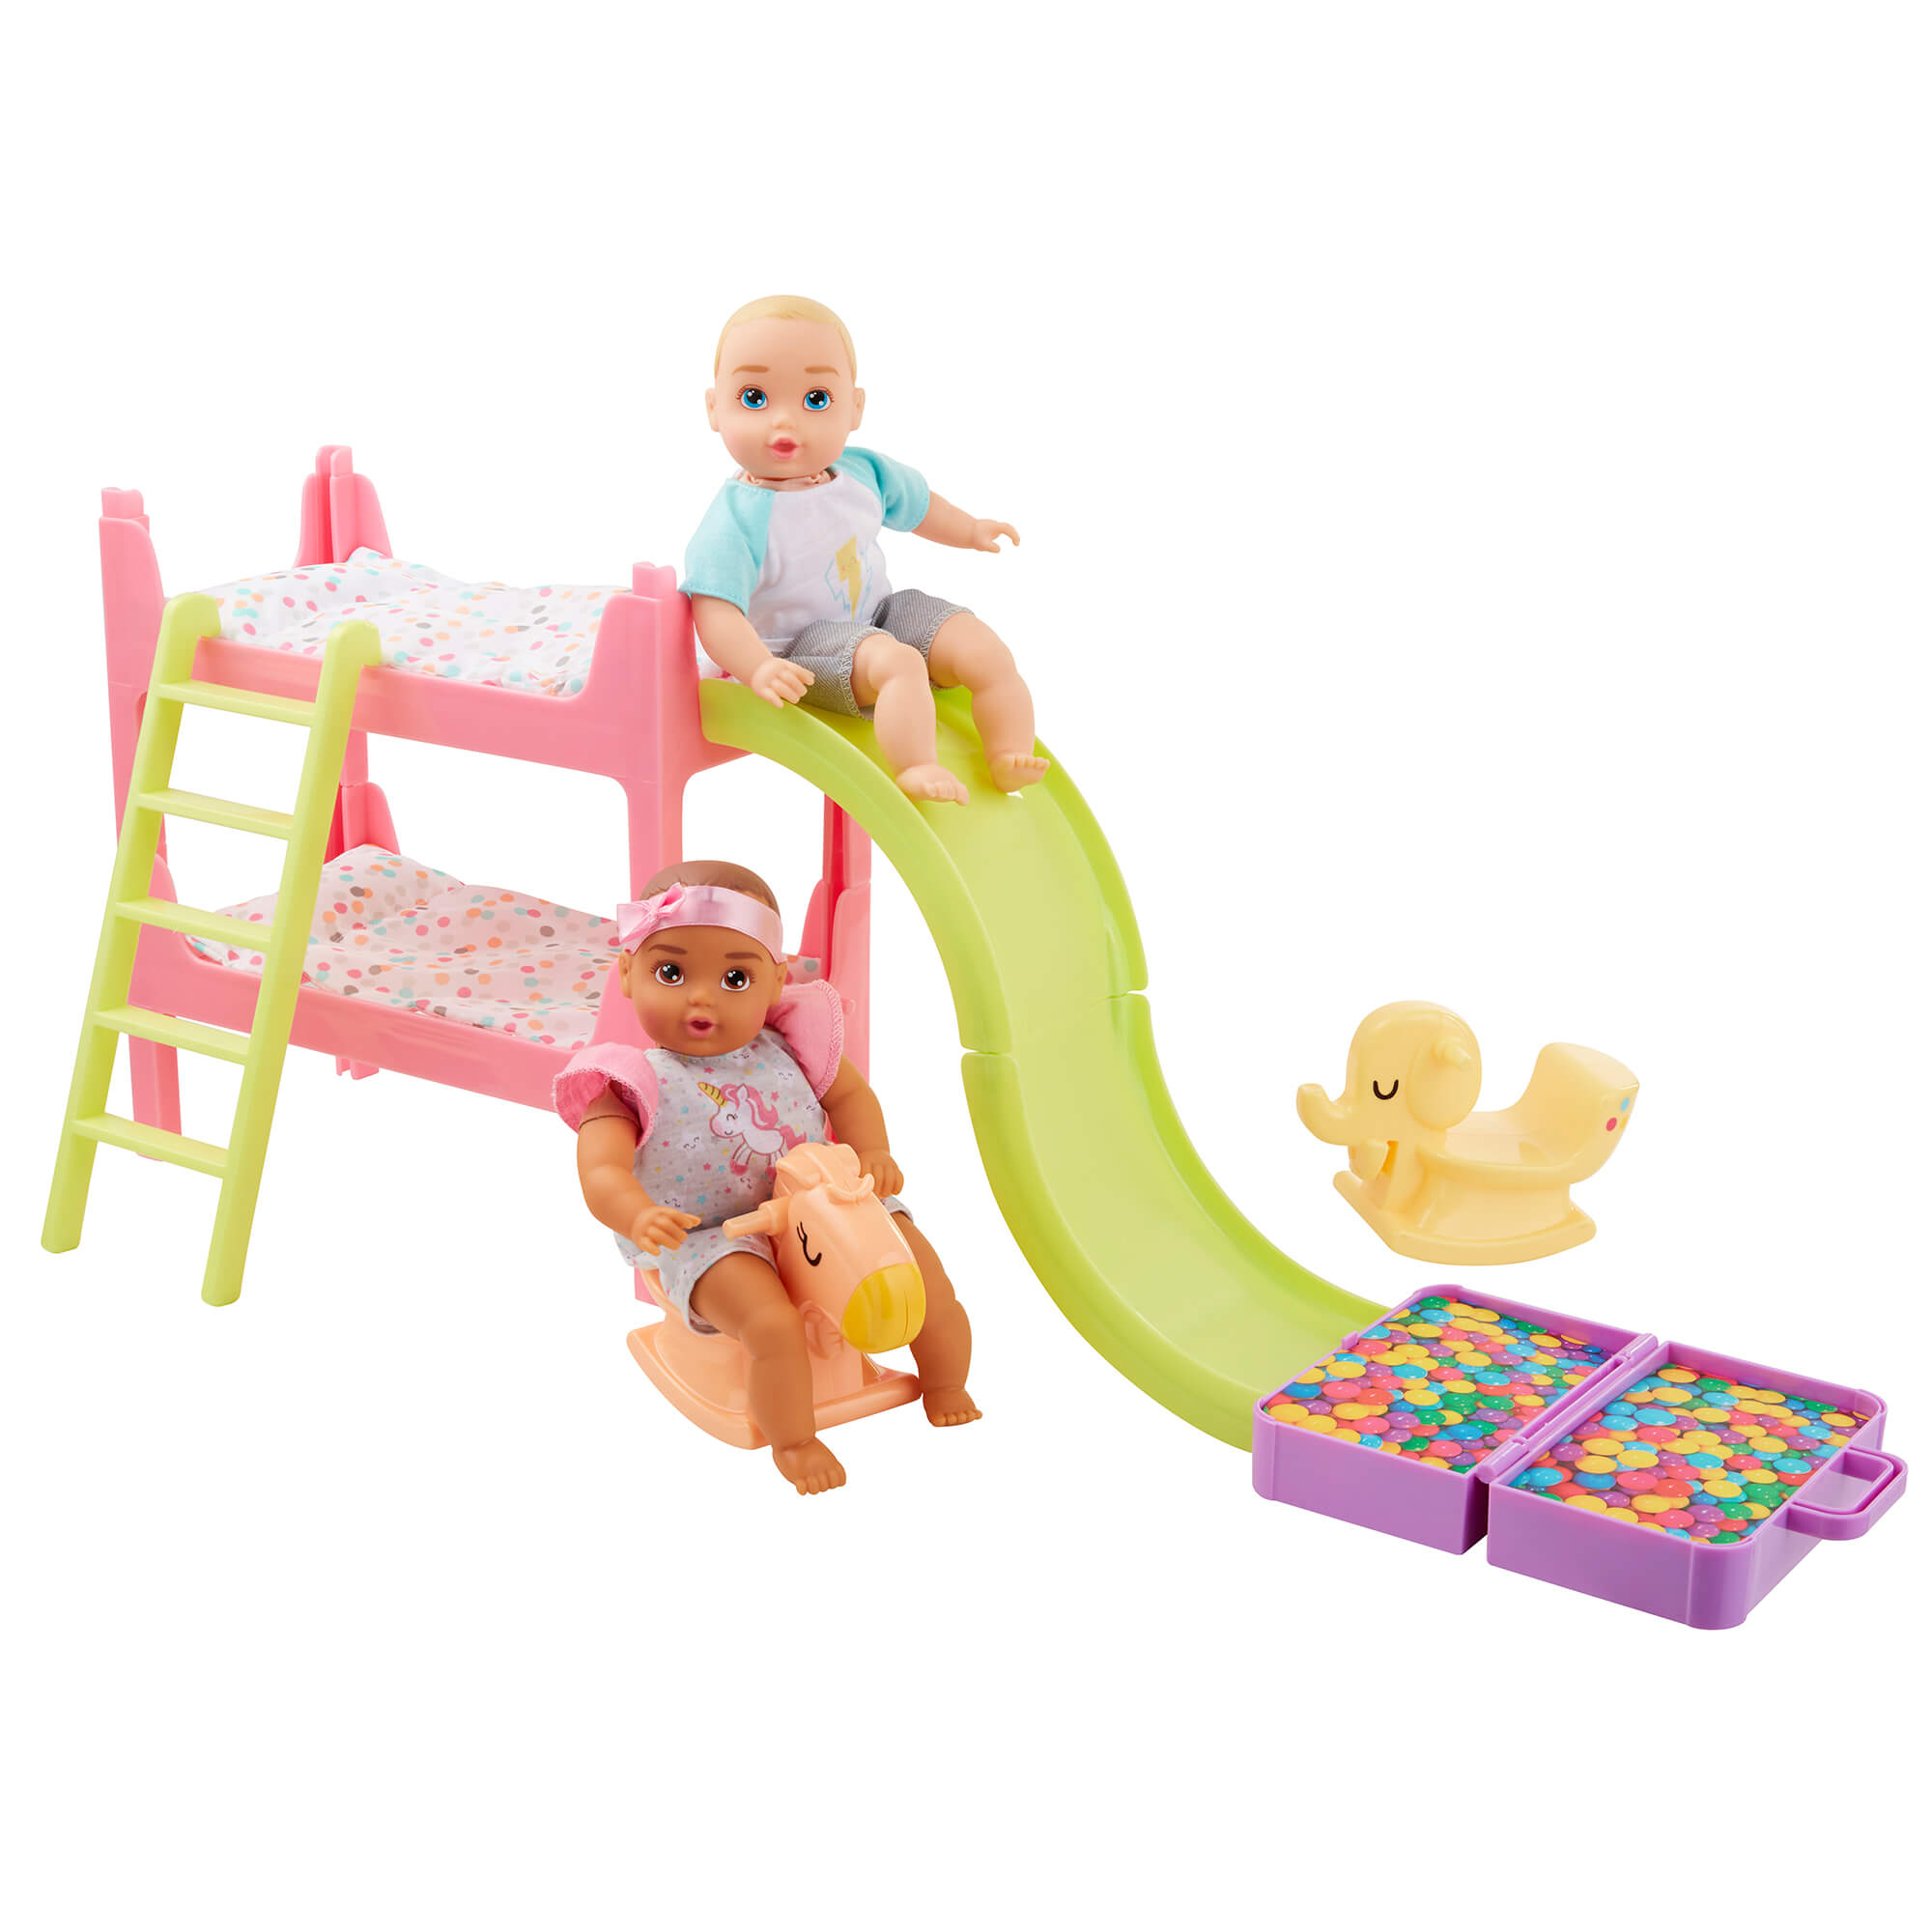 Perfectly Cute Baby My Lil' Baby Bunk Bed Playroom Playset